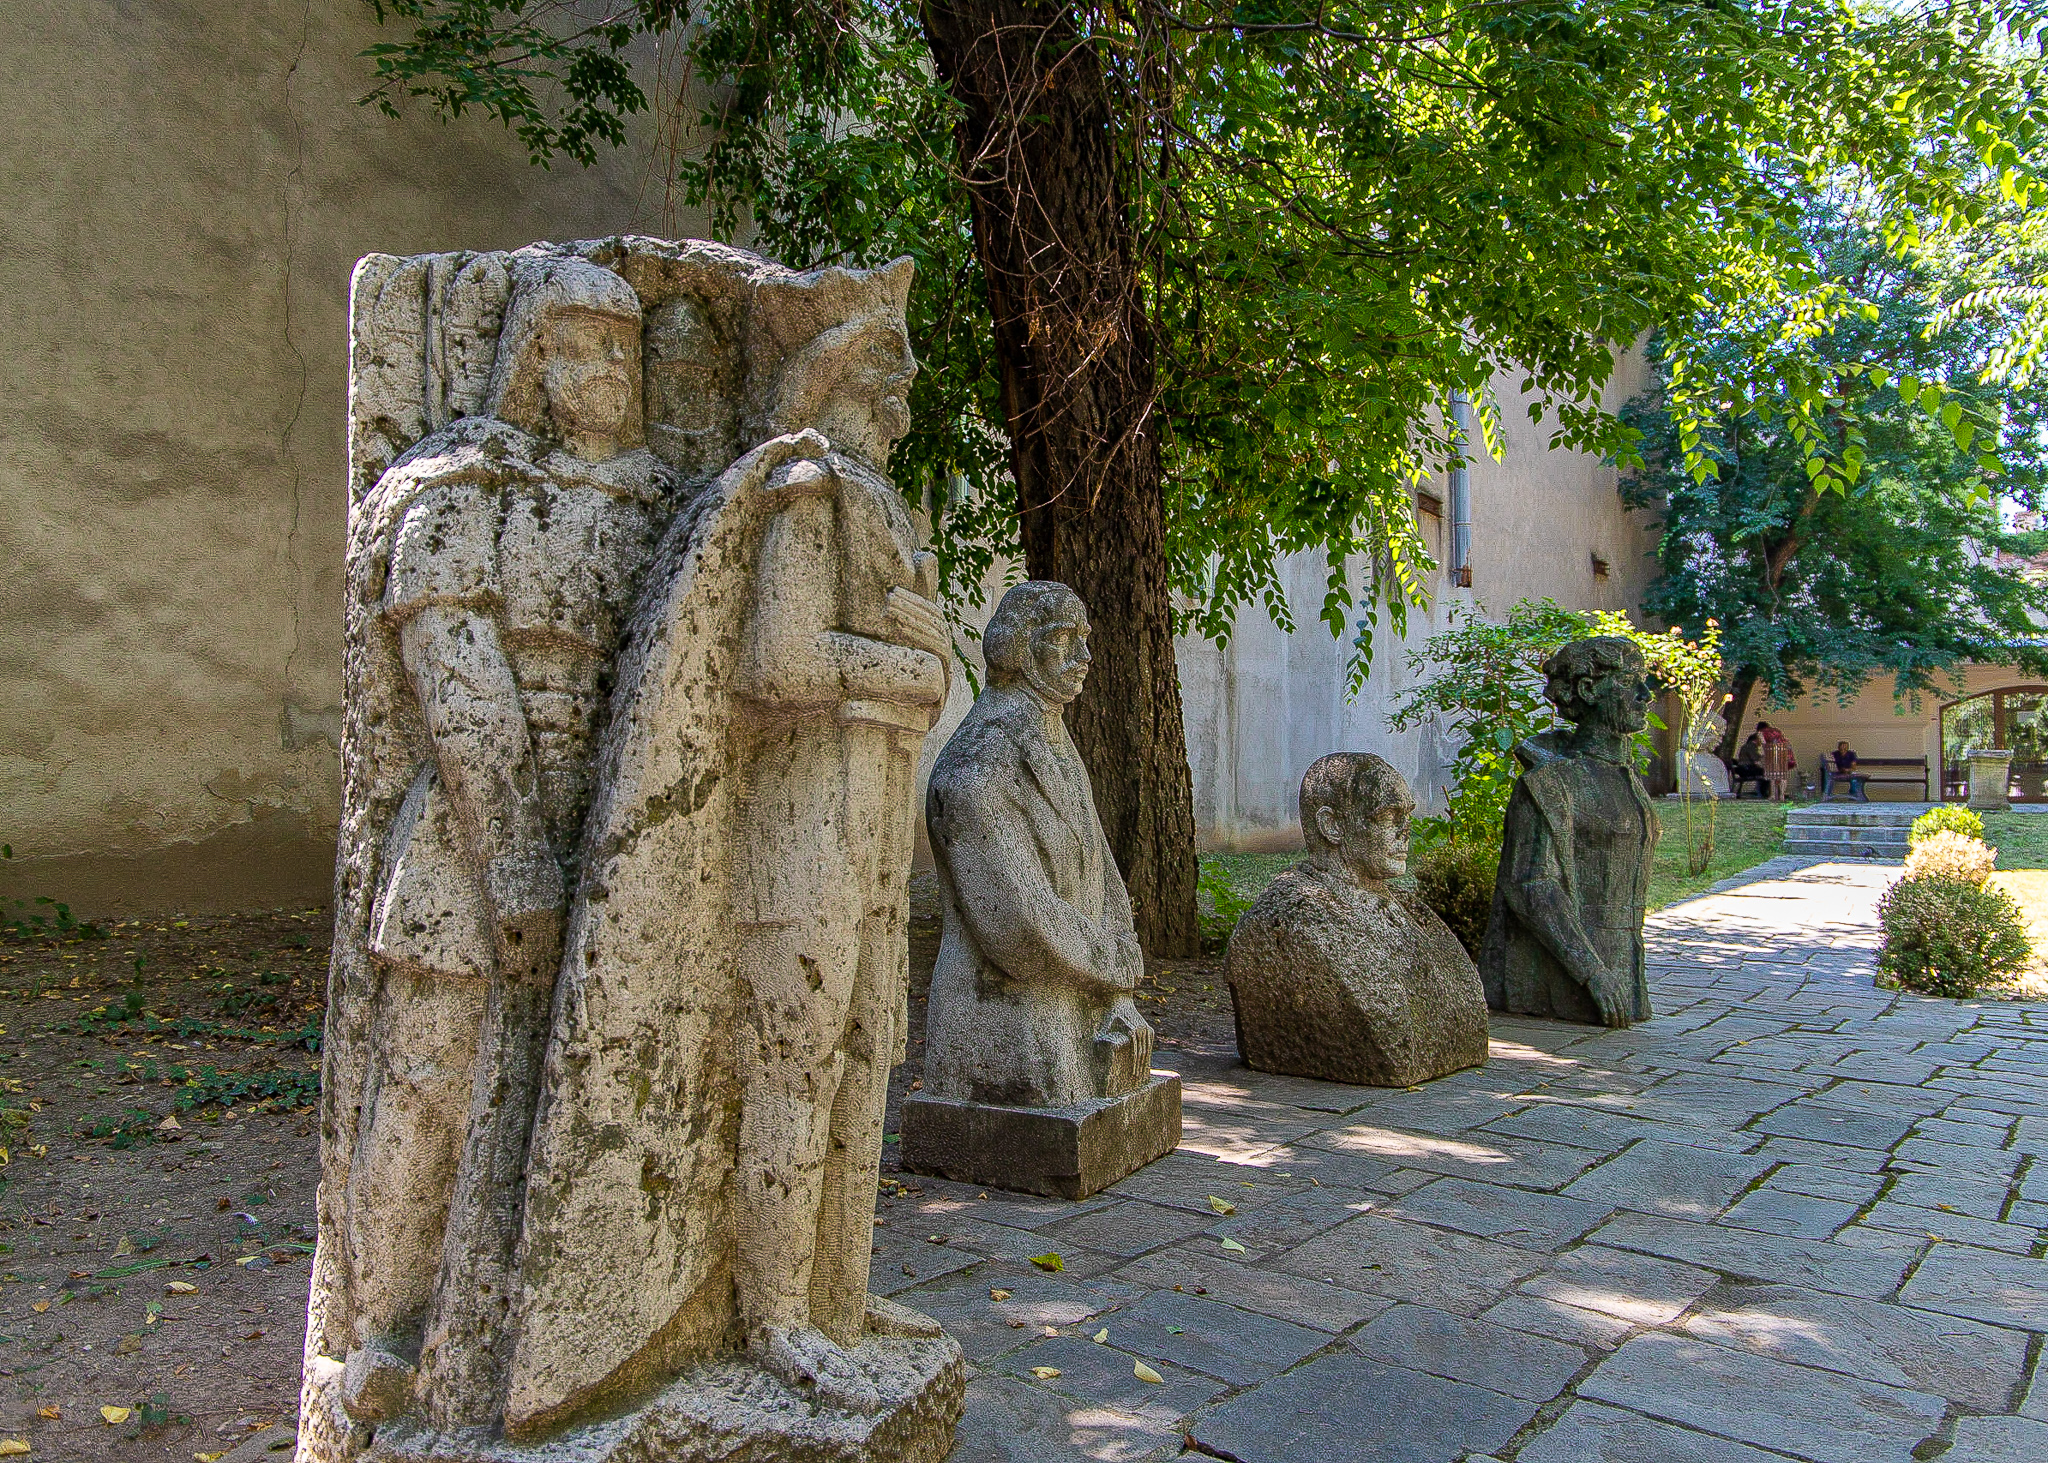 Historic figures from Romania's past